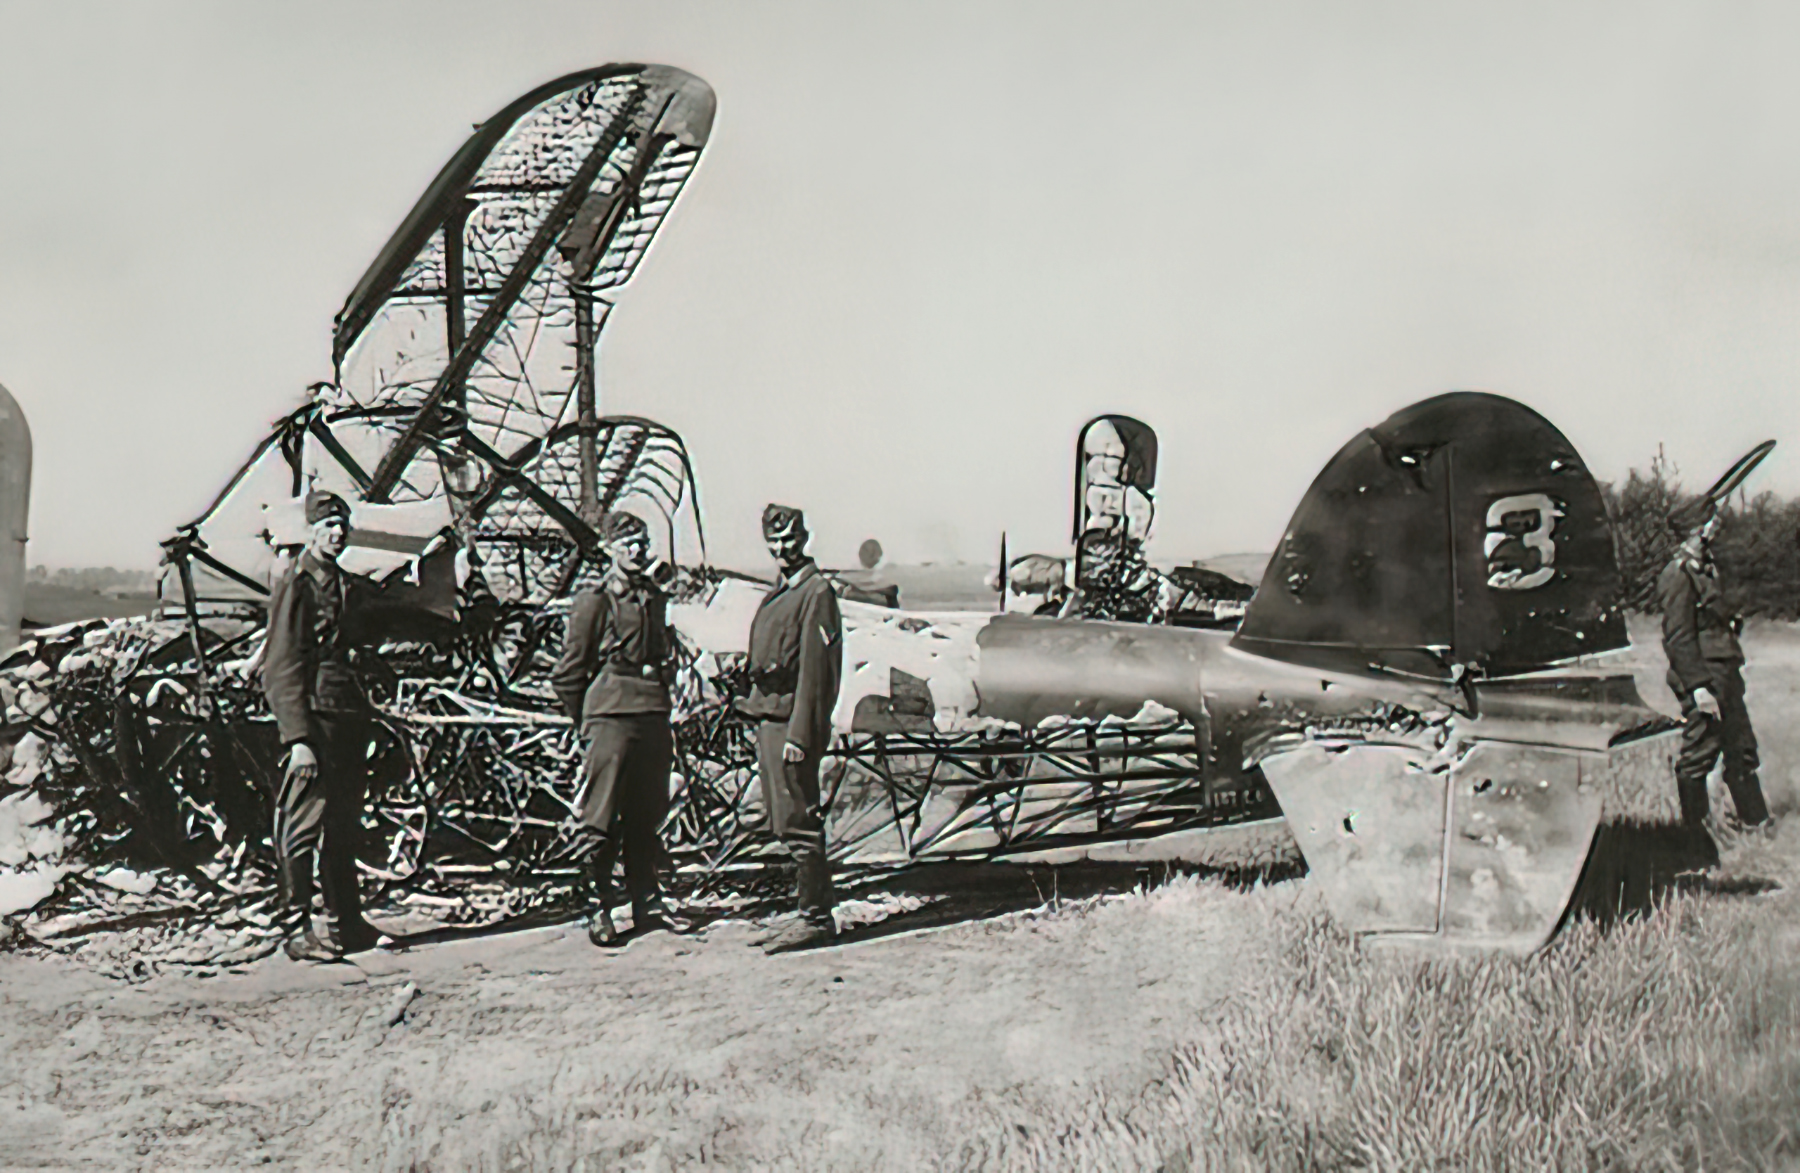 Fiat CR 42 Falco BAF IIFG3FS White 3 destroyed by strafing Belgium 1940 01